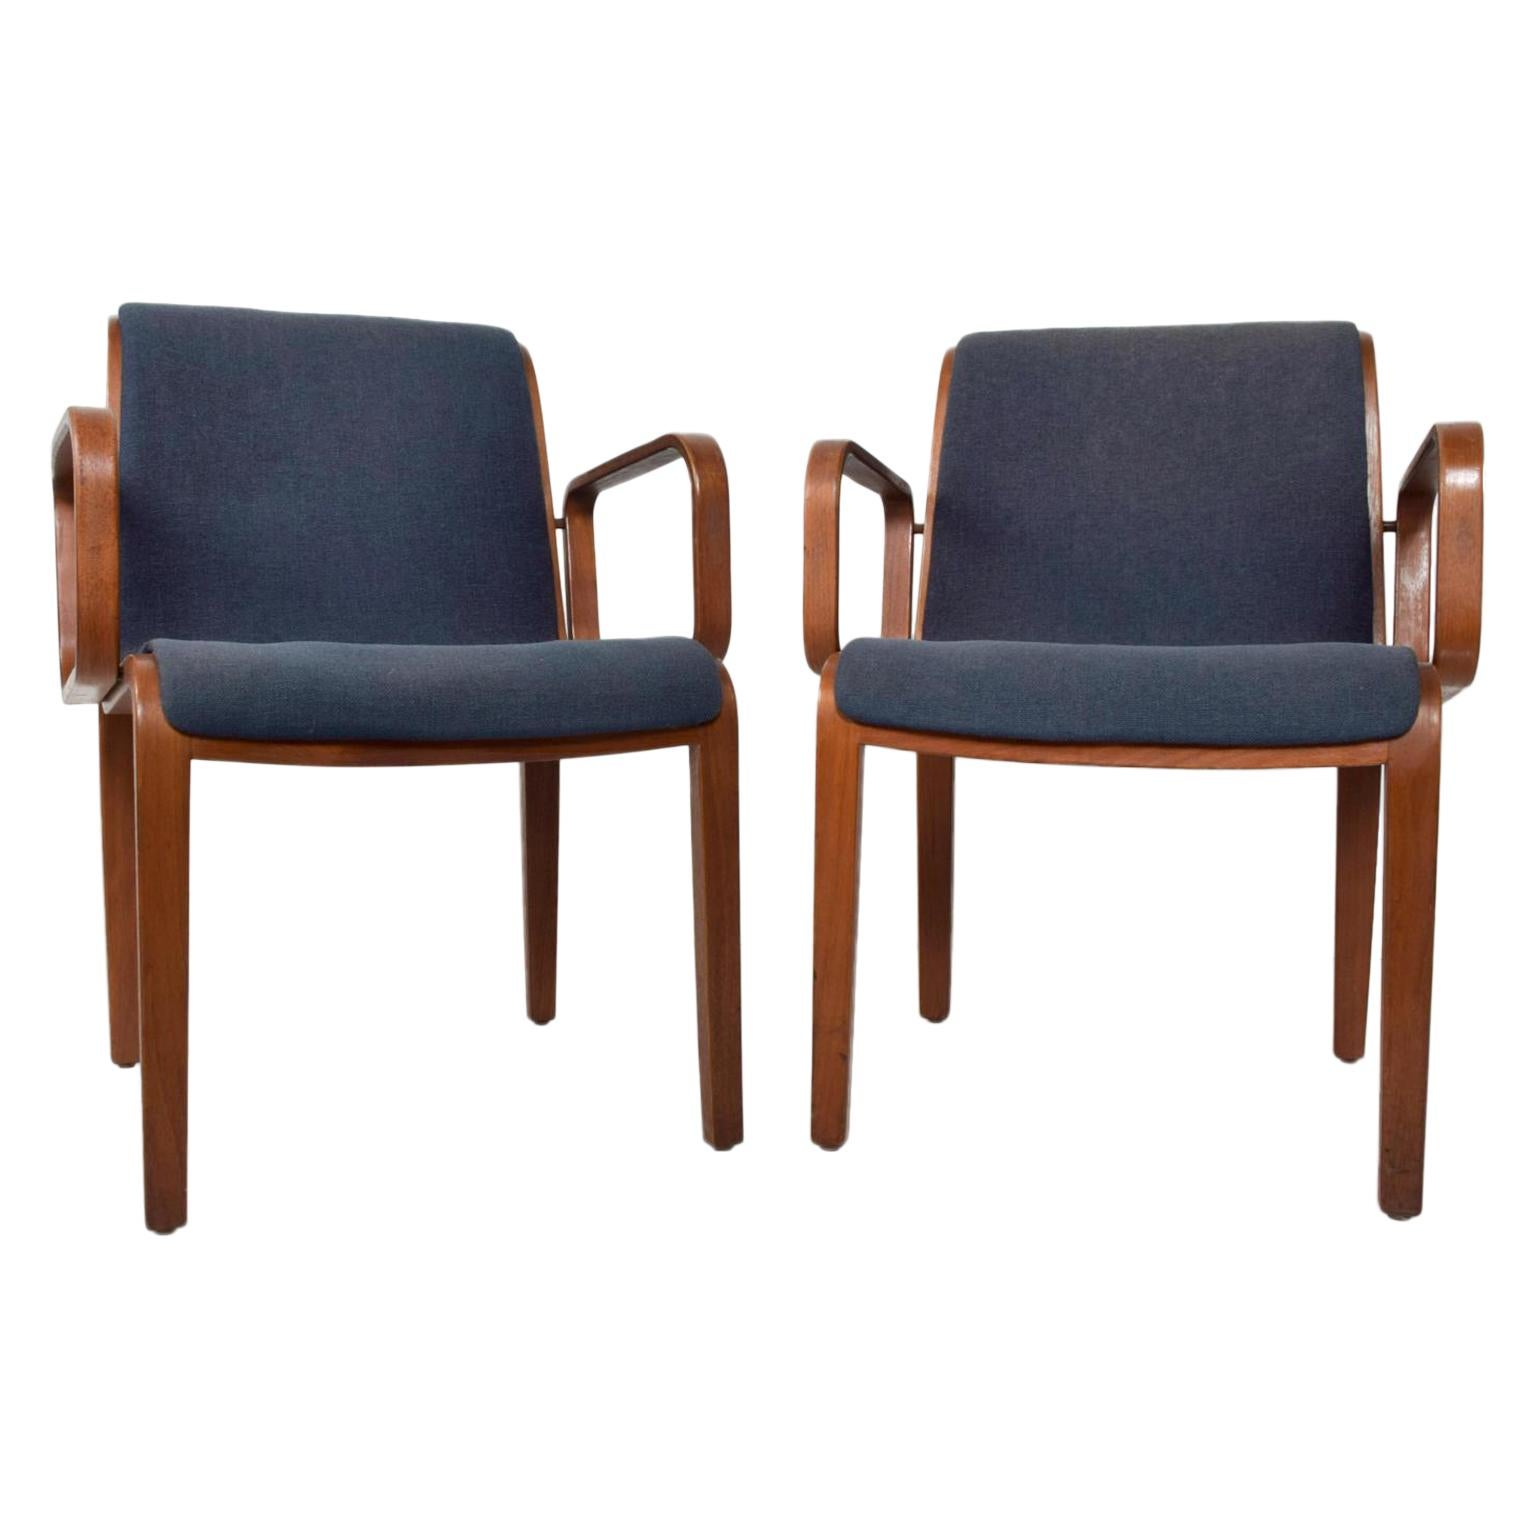 Bill Stephens for Knoll Bentwood Armchairs Midcentury Pair  1970s